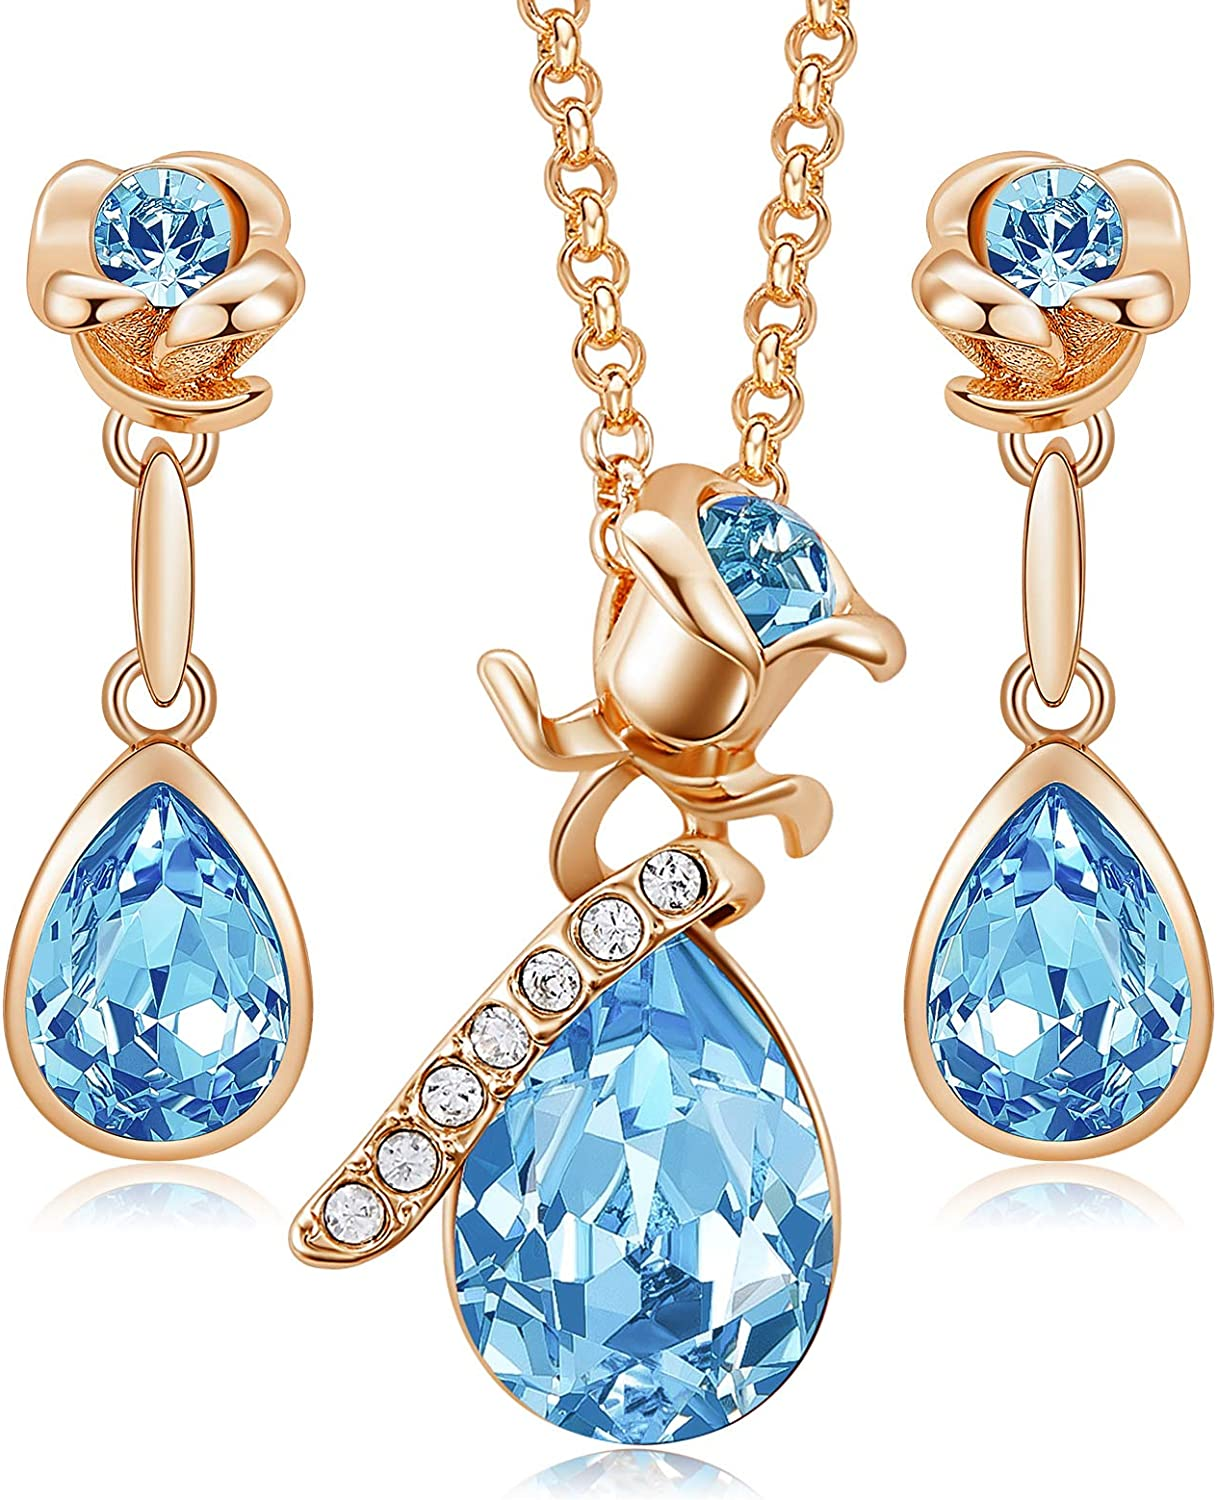 CDE Jewelry Sets for Women Rose with Ranking TOP15 Gold Cr High quality new Embellished